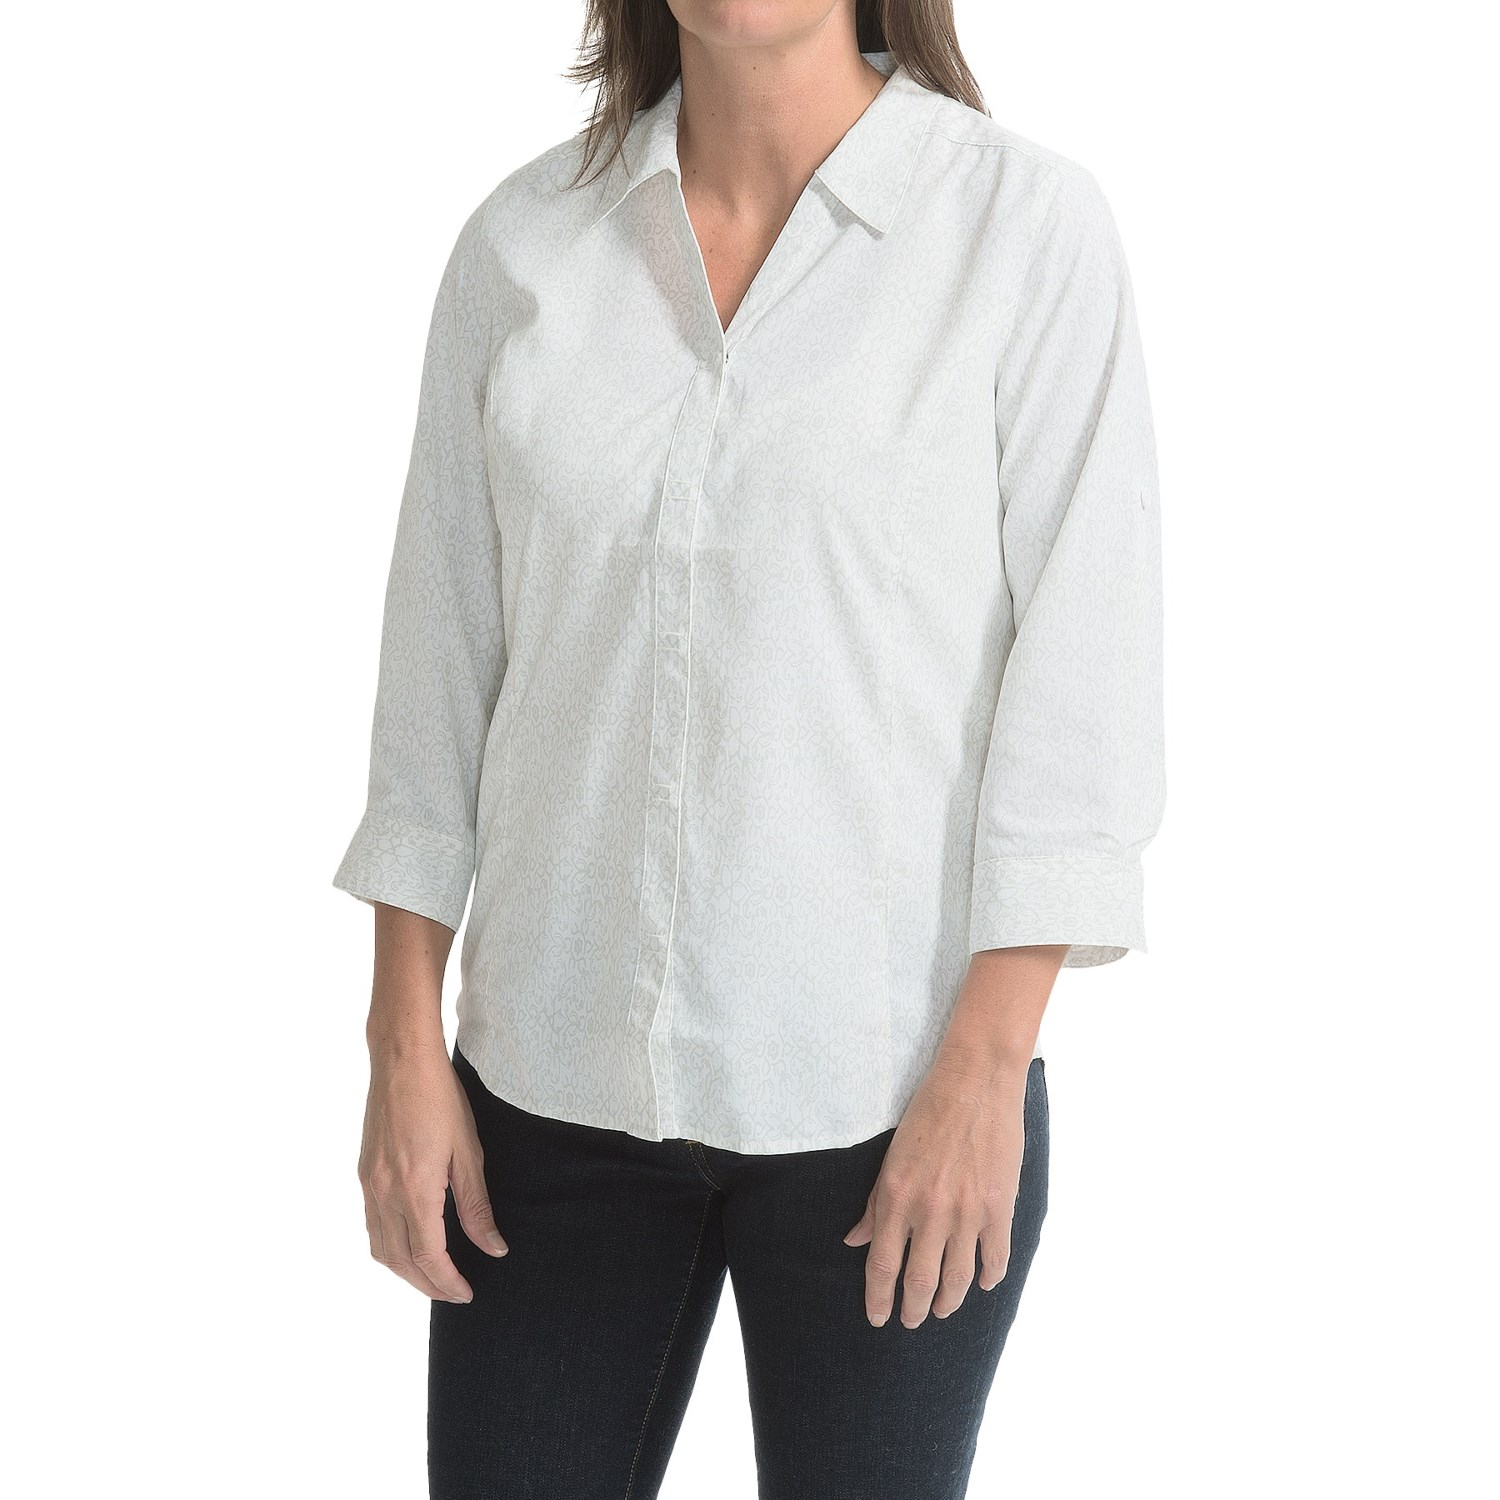 Royal robbins expedition shirt for women save 64 for Royal robbins expedition shirt 3 4 sleeve women s